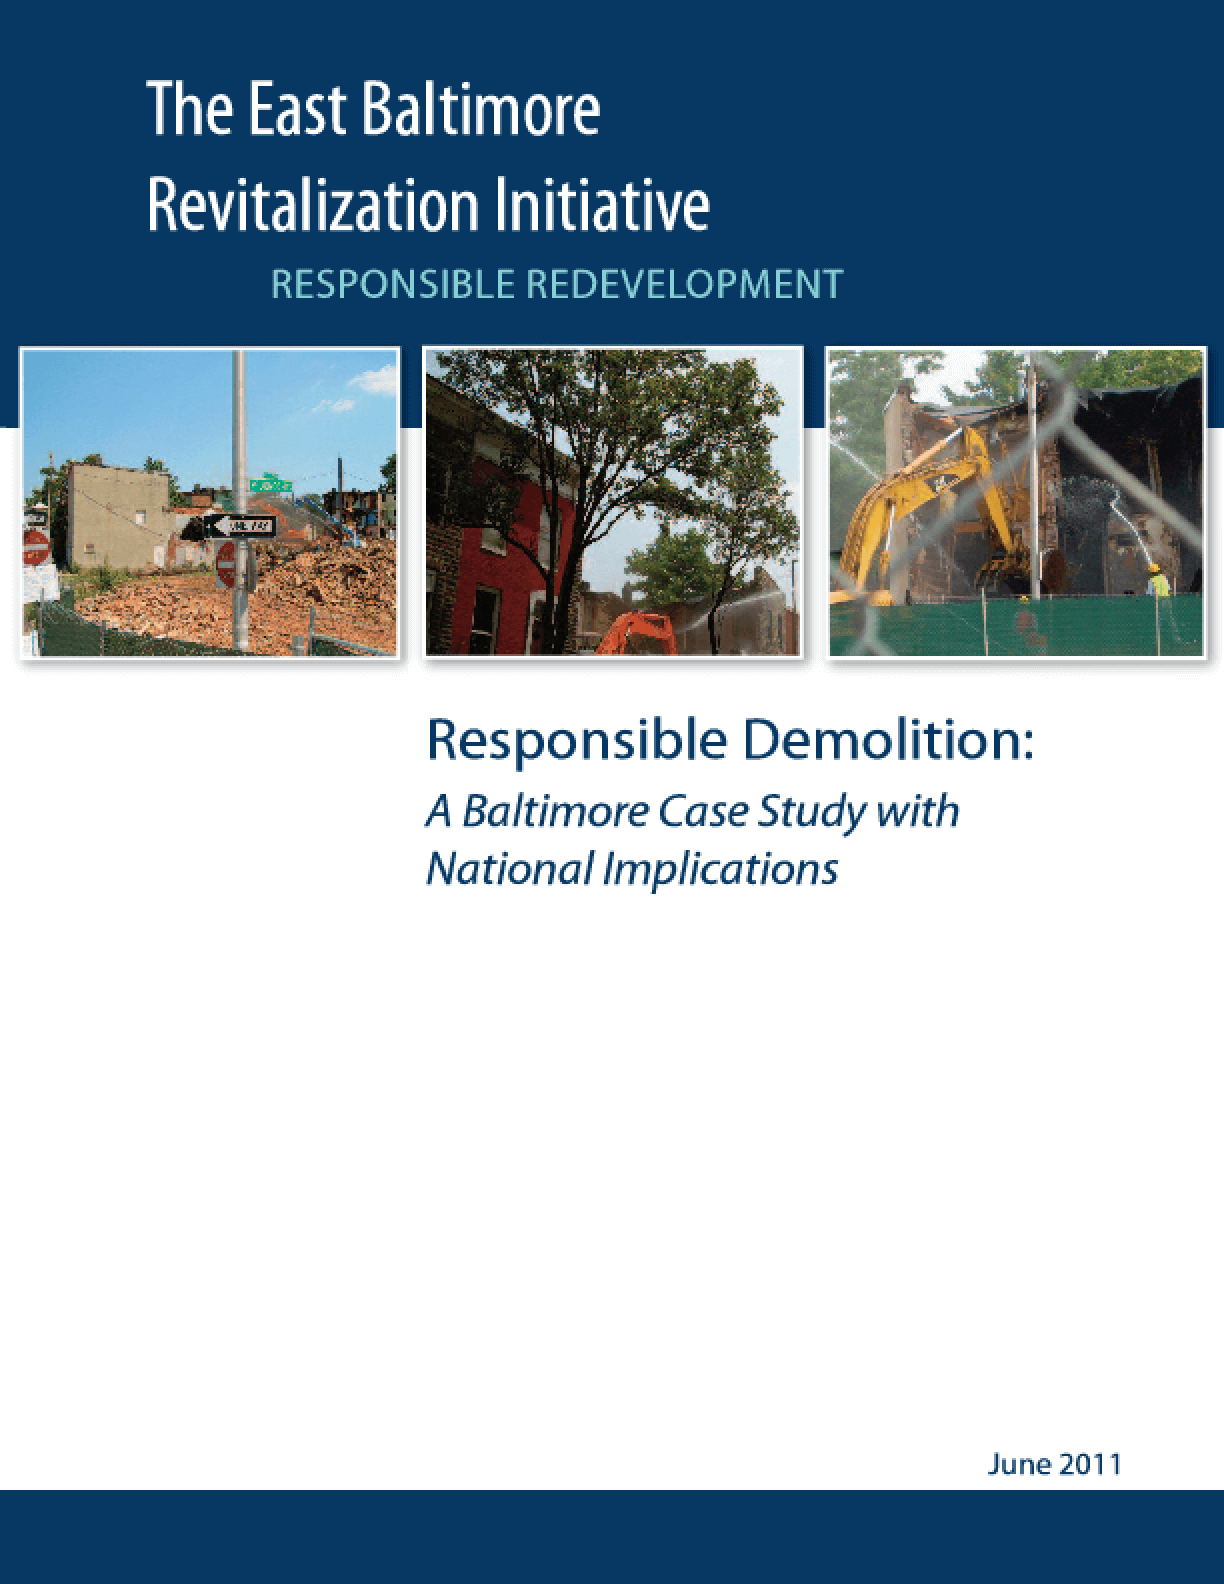 Responsible Demolition: A Baltimore Case Study With National Implications